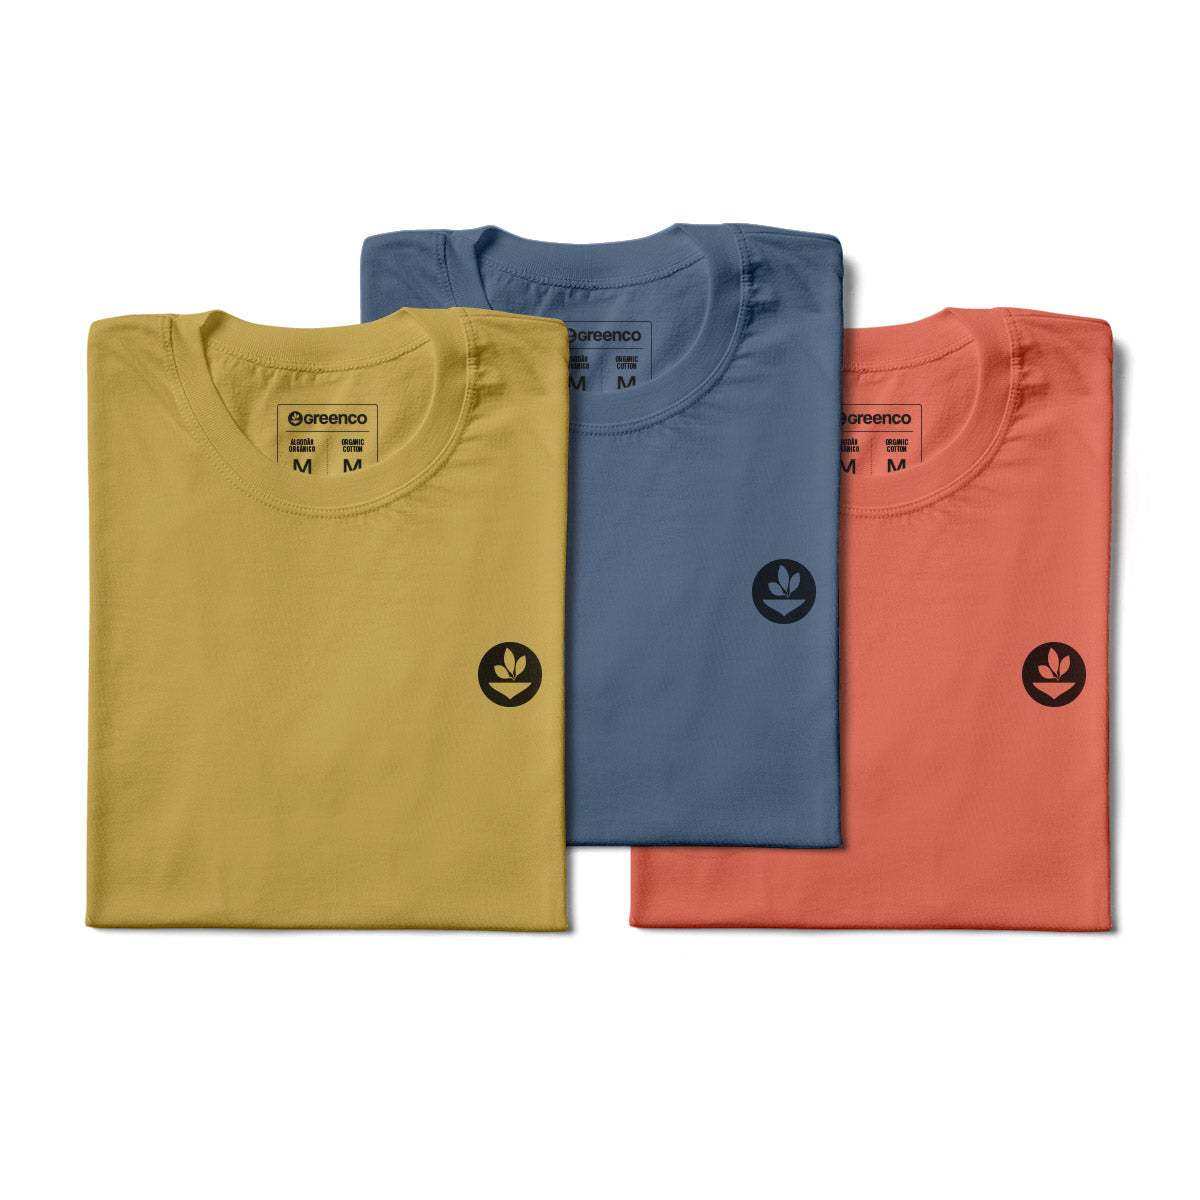 Basic Women's Kit Organic Cotton - 3 t-shirts